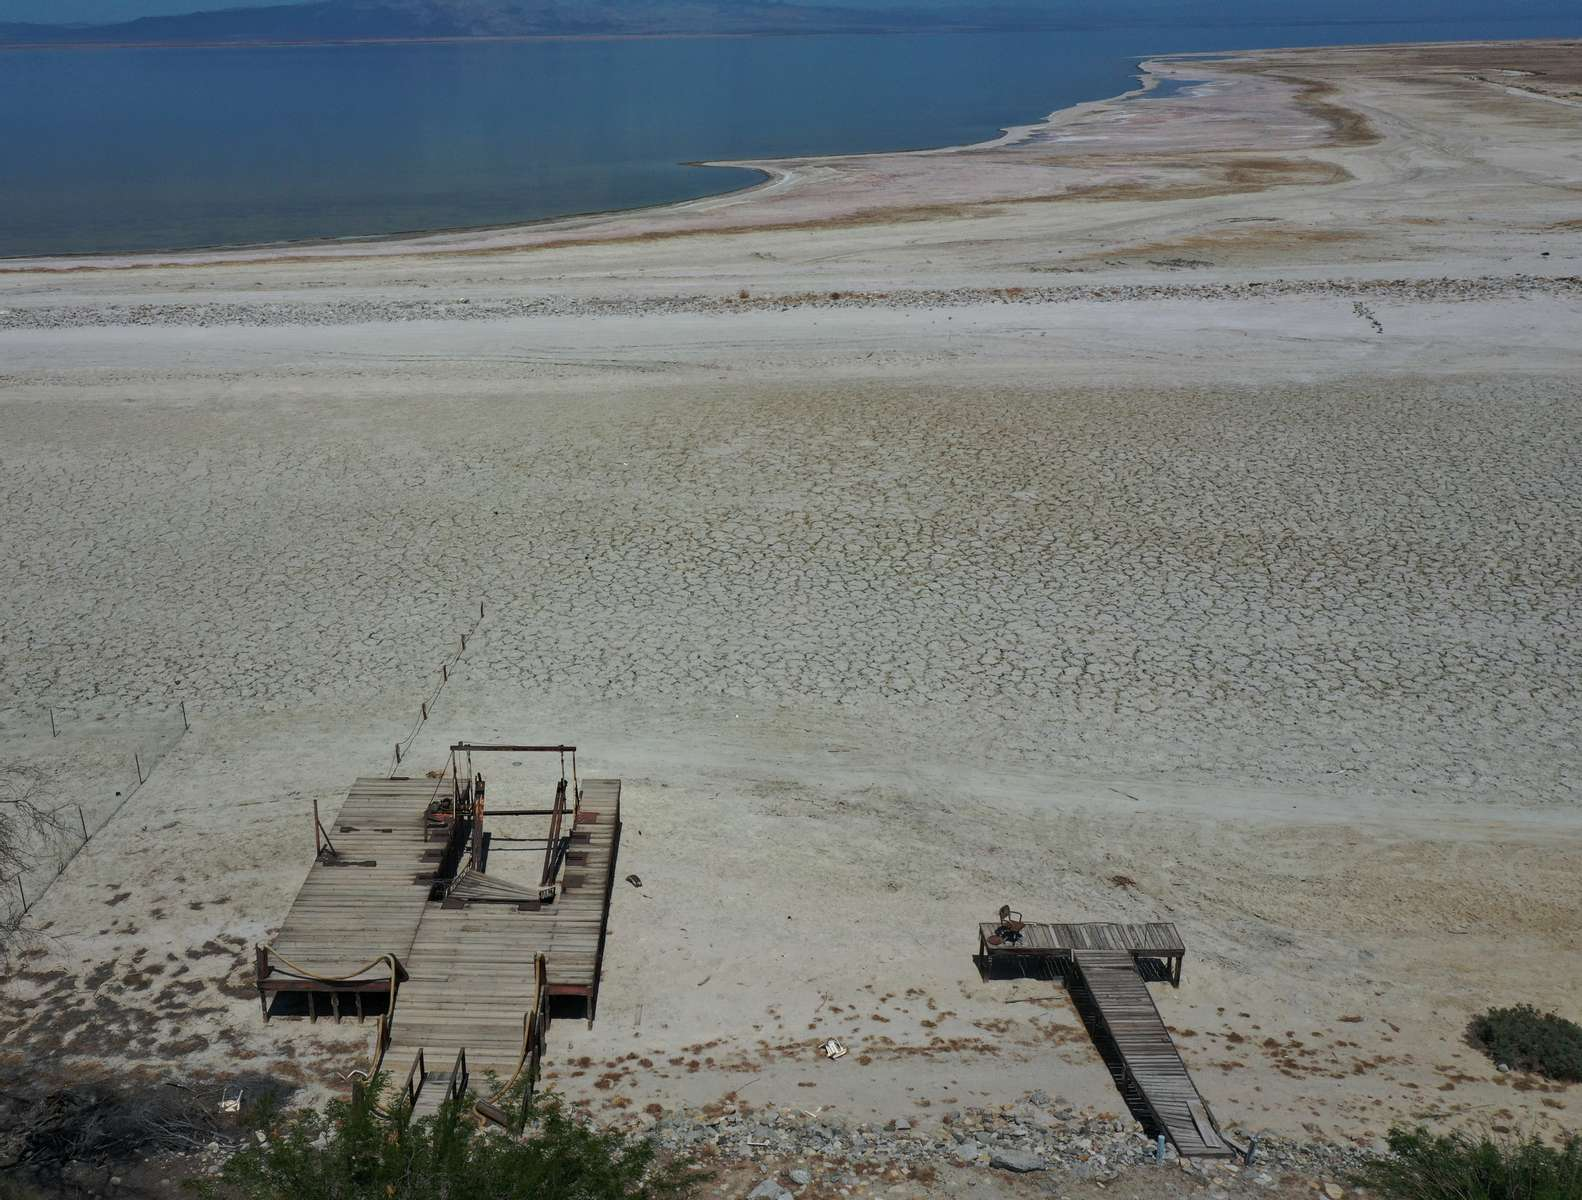 An aerial view shows former boat launches on a Salton Sea's beach, with the water much further away, as California faces its worst drought since 1977, in Salton City, California, U.S., July 4, 2021.